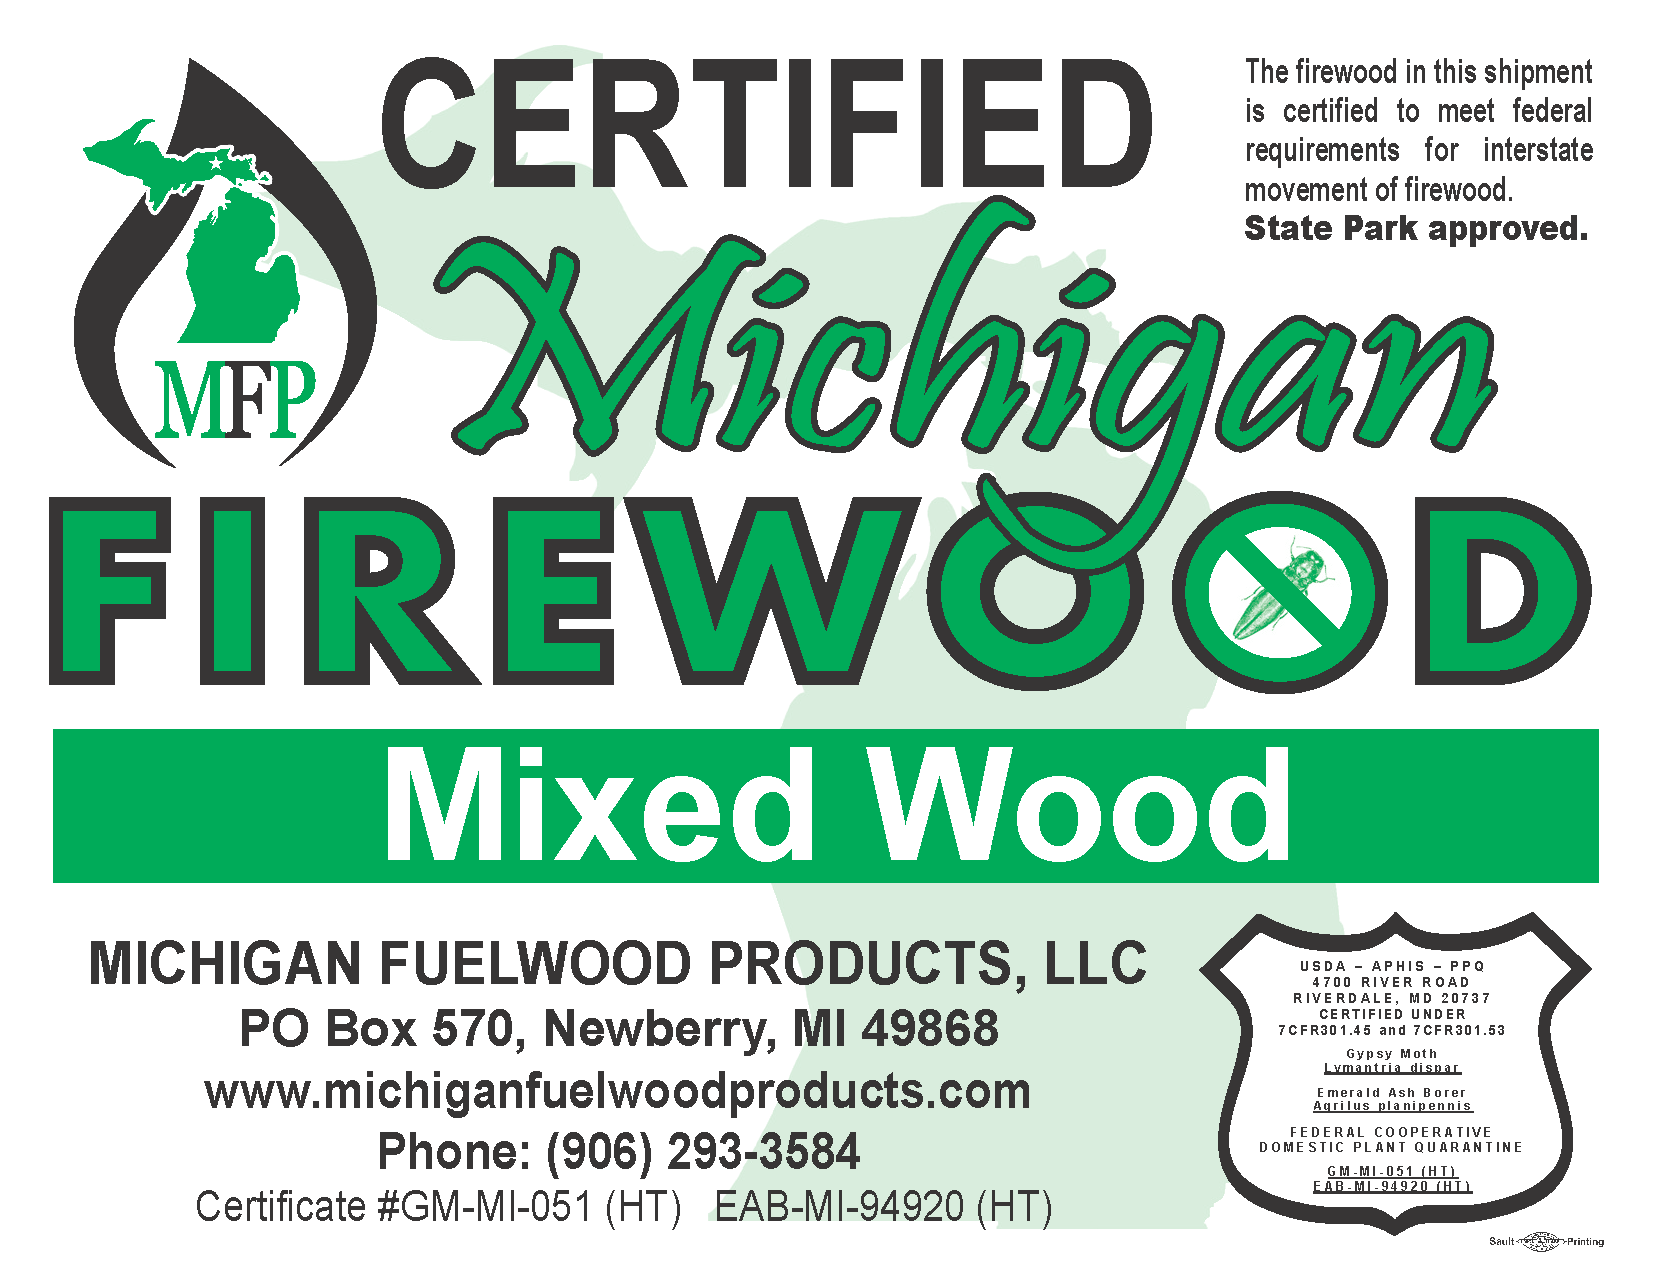 Michigan Fuelwood Products Mixed Wood firewood bundle label 1 cubic foot